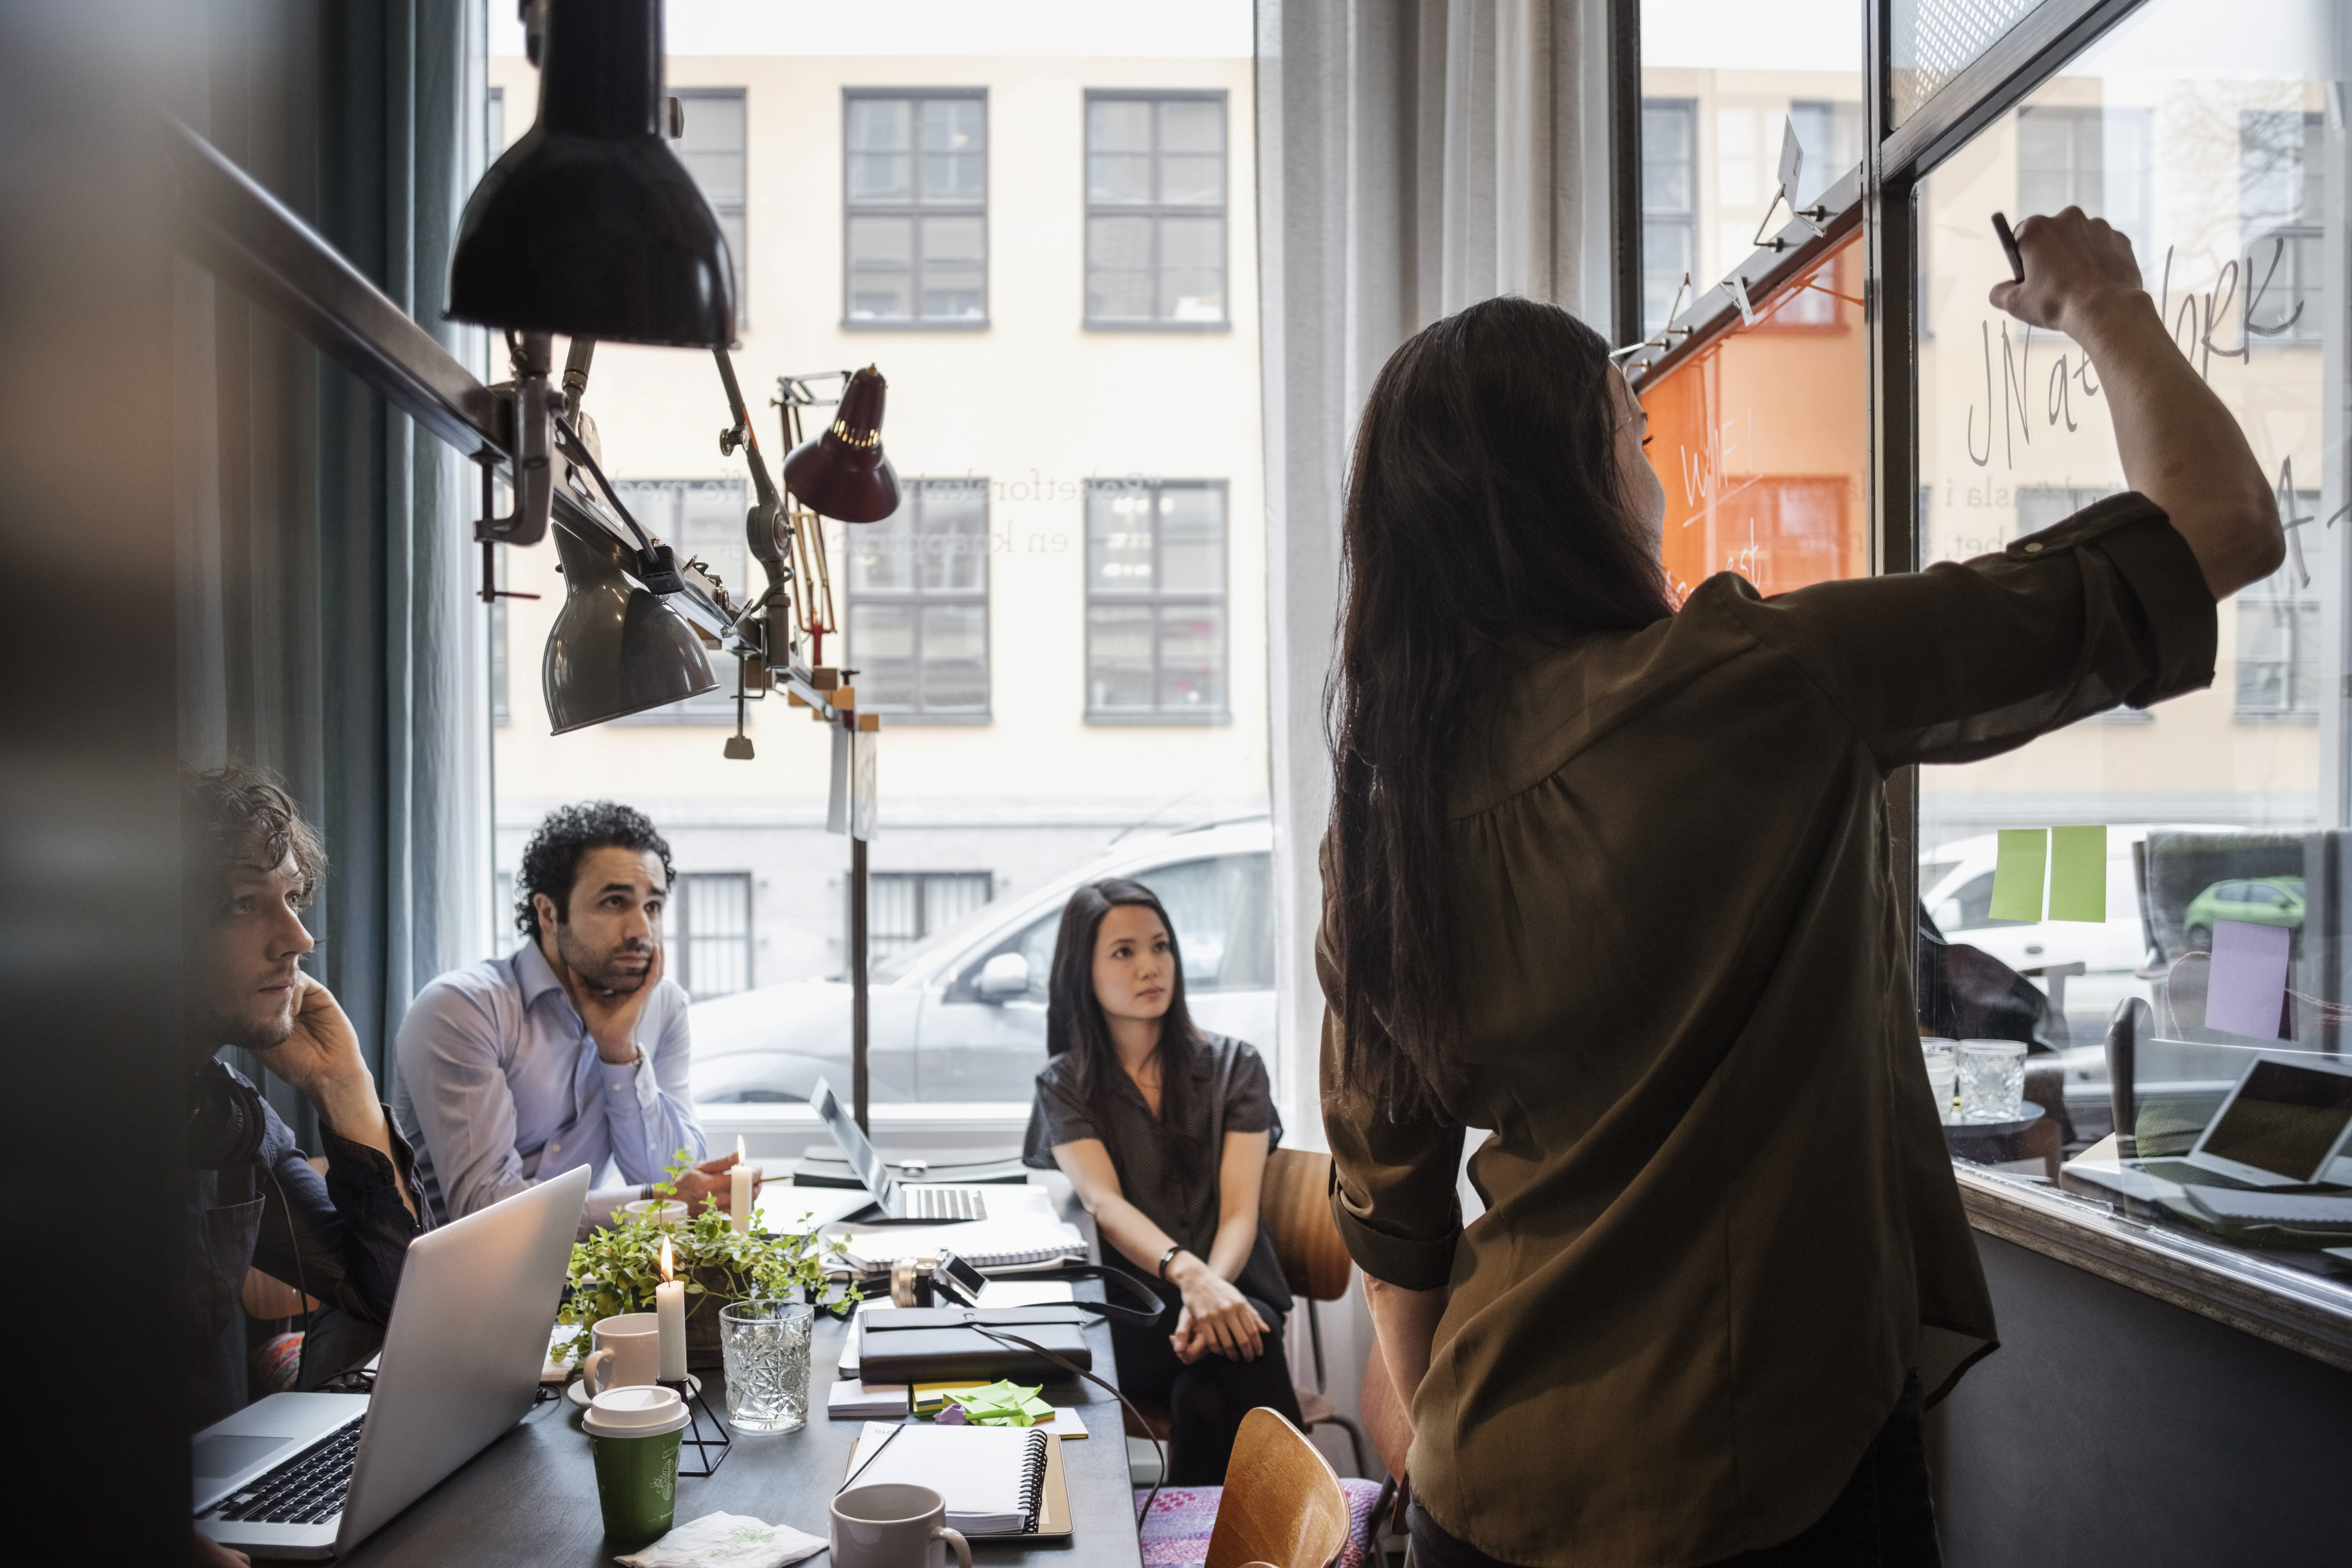 Creative business people looking at female coworker writing on glass in office